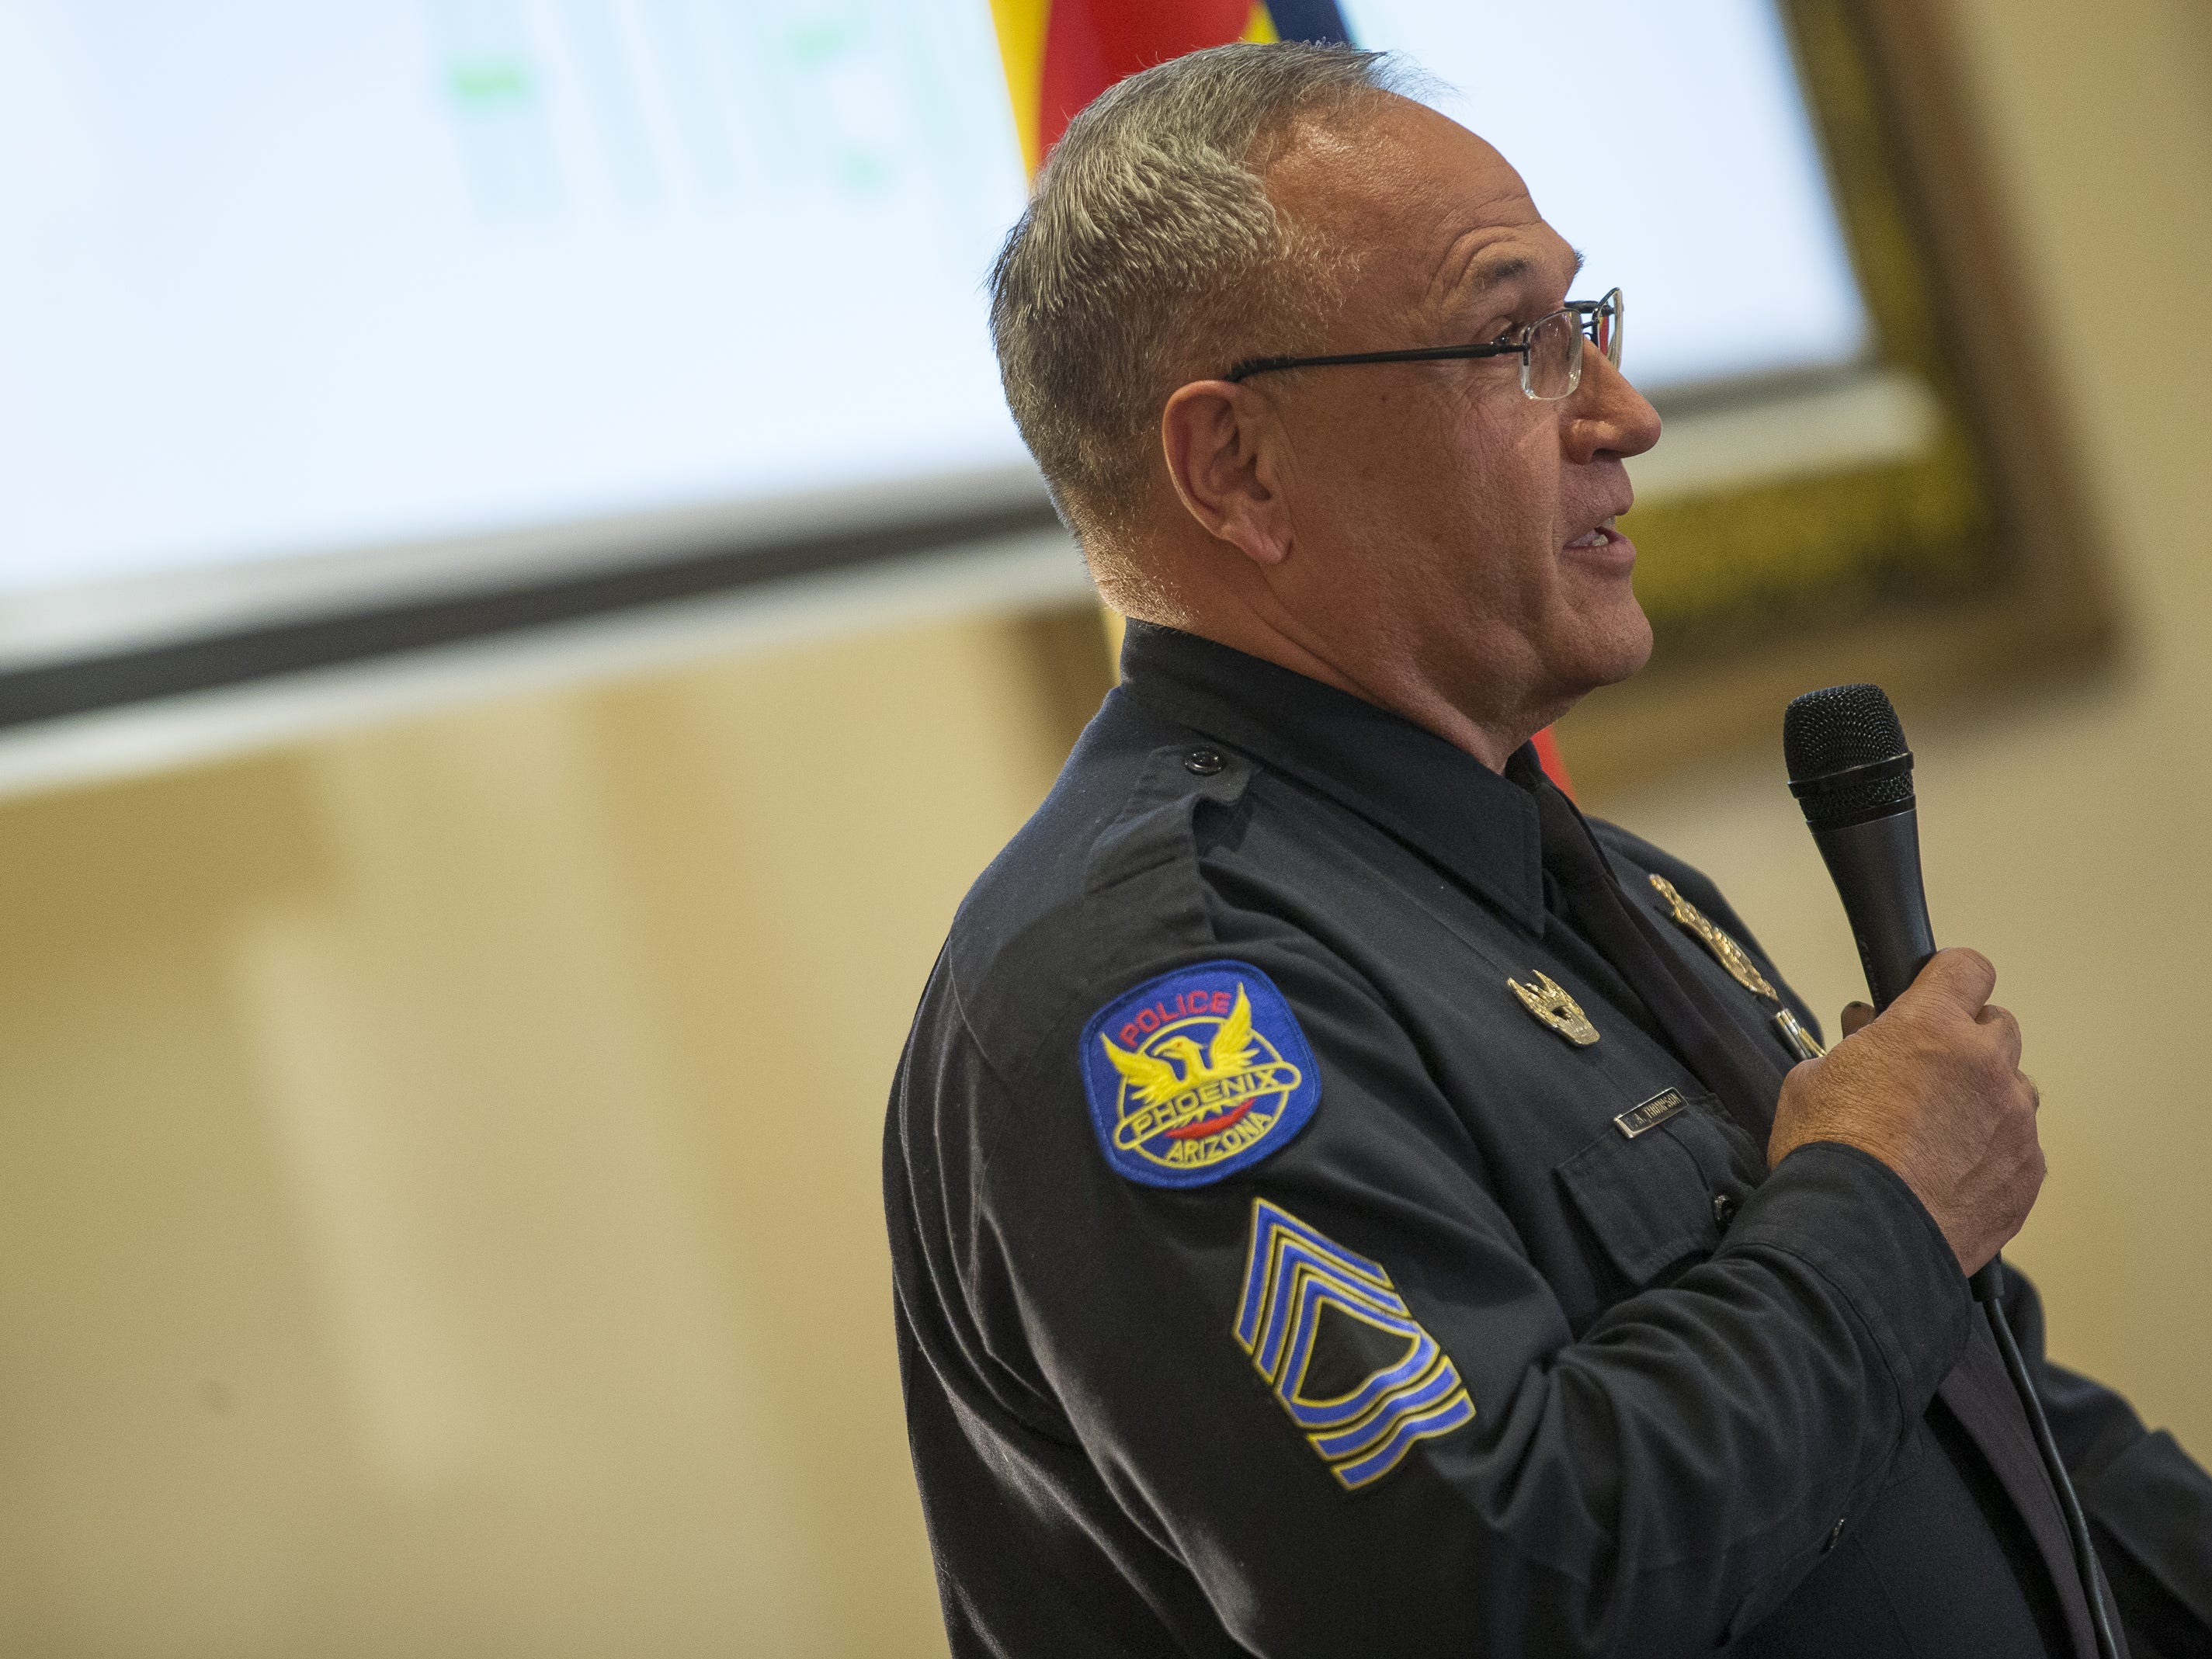 Phoenix Police Sgt. Tommy Thompson speaks at a vigil held at the Islamic Center of Northeast Valley in Scottsdale, Ariz., on Sunday, March 17, 2019, in memory of the Christchurch New Zealand shooting victims.